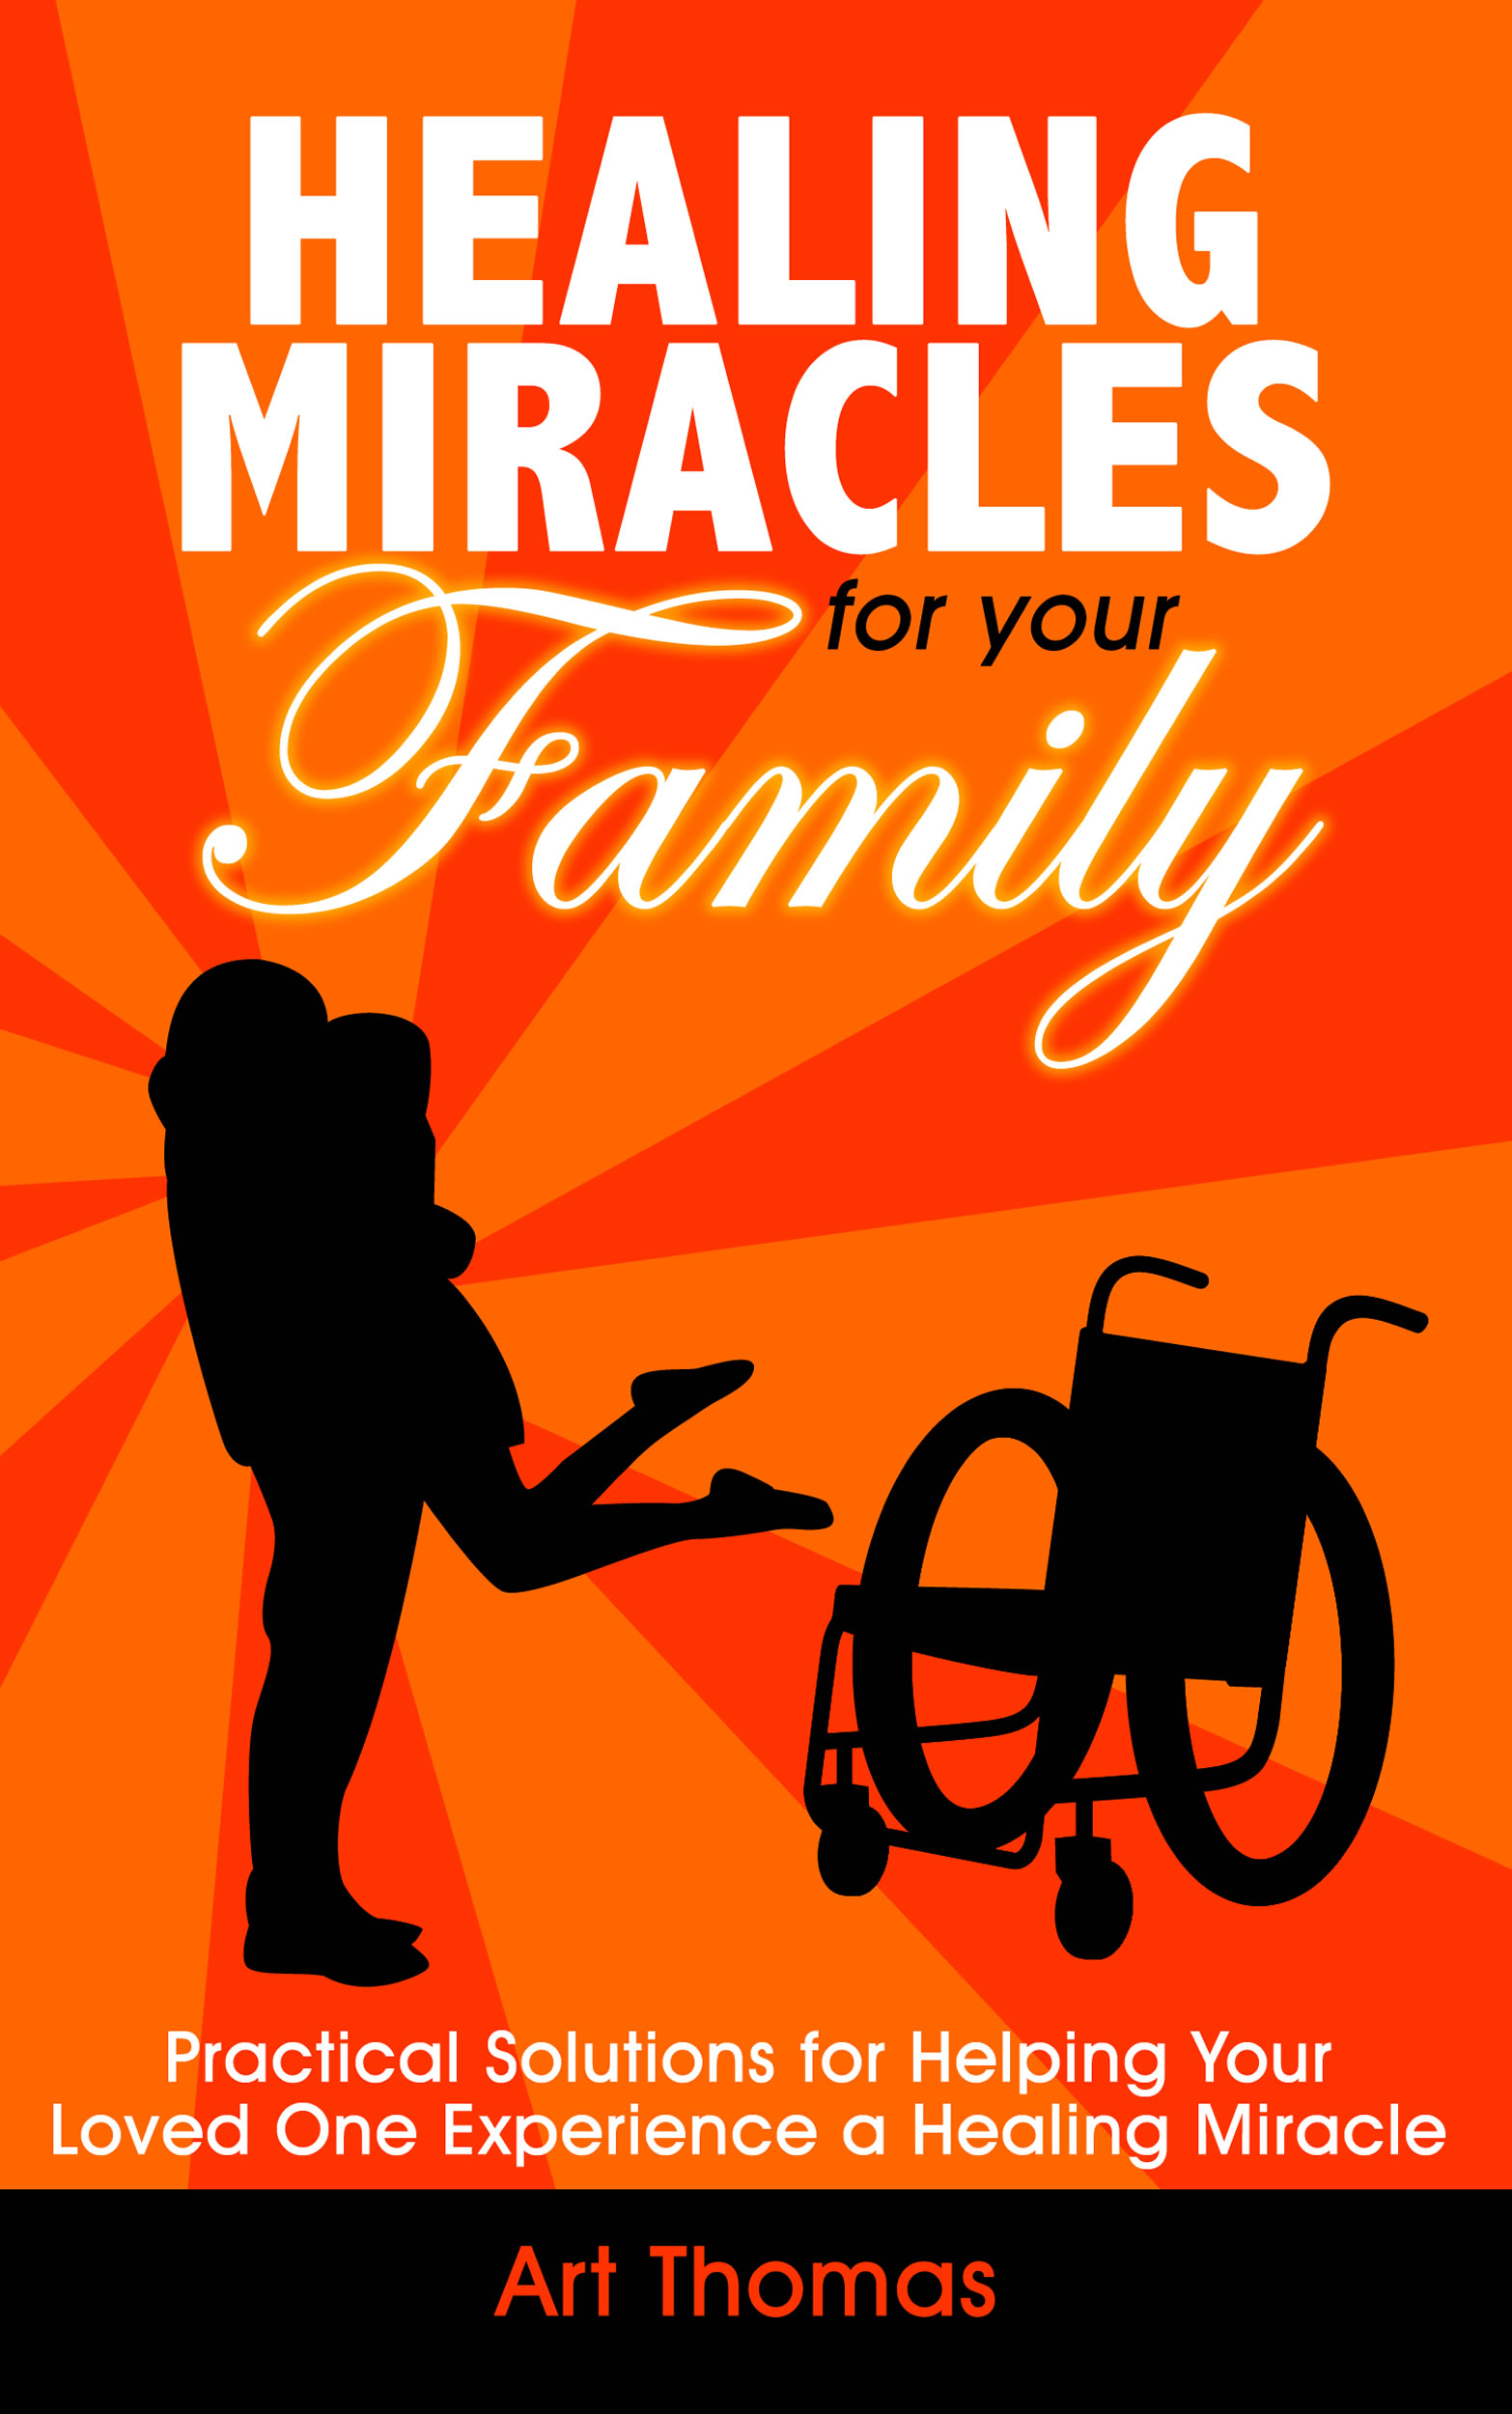 Healing Miracles for Your Family - Art Thomas